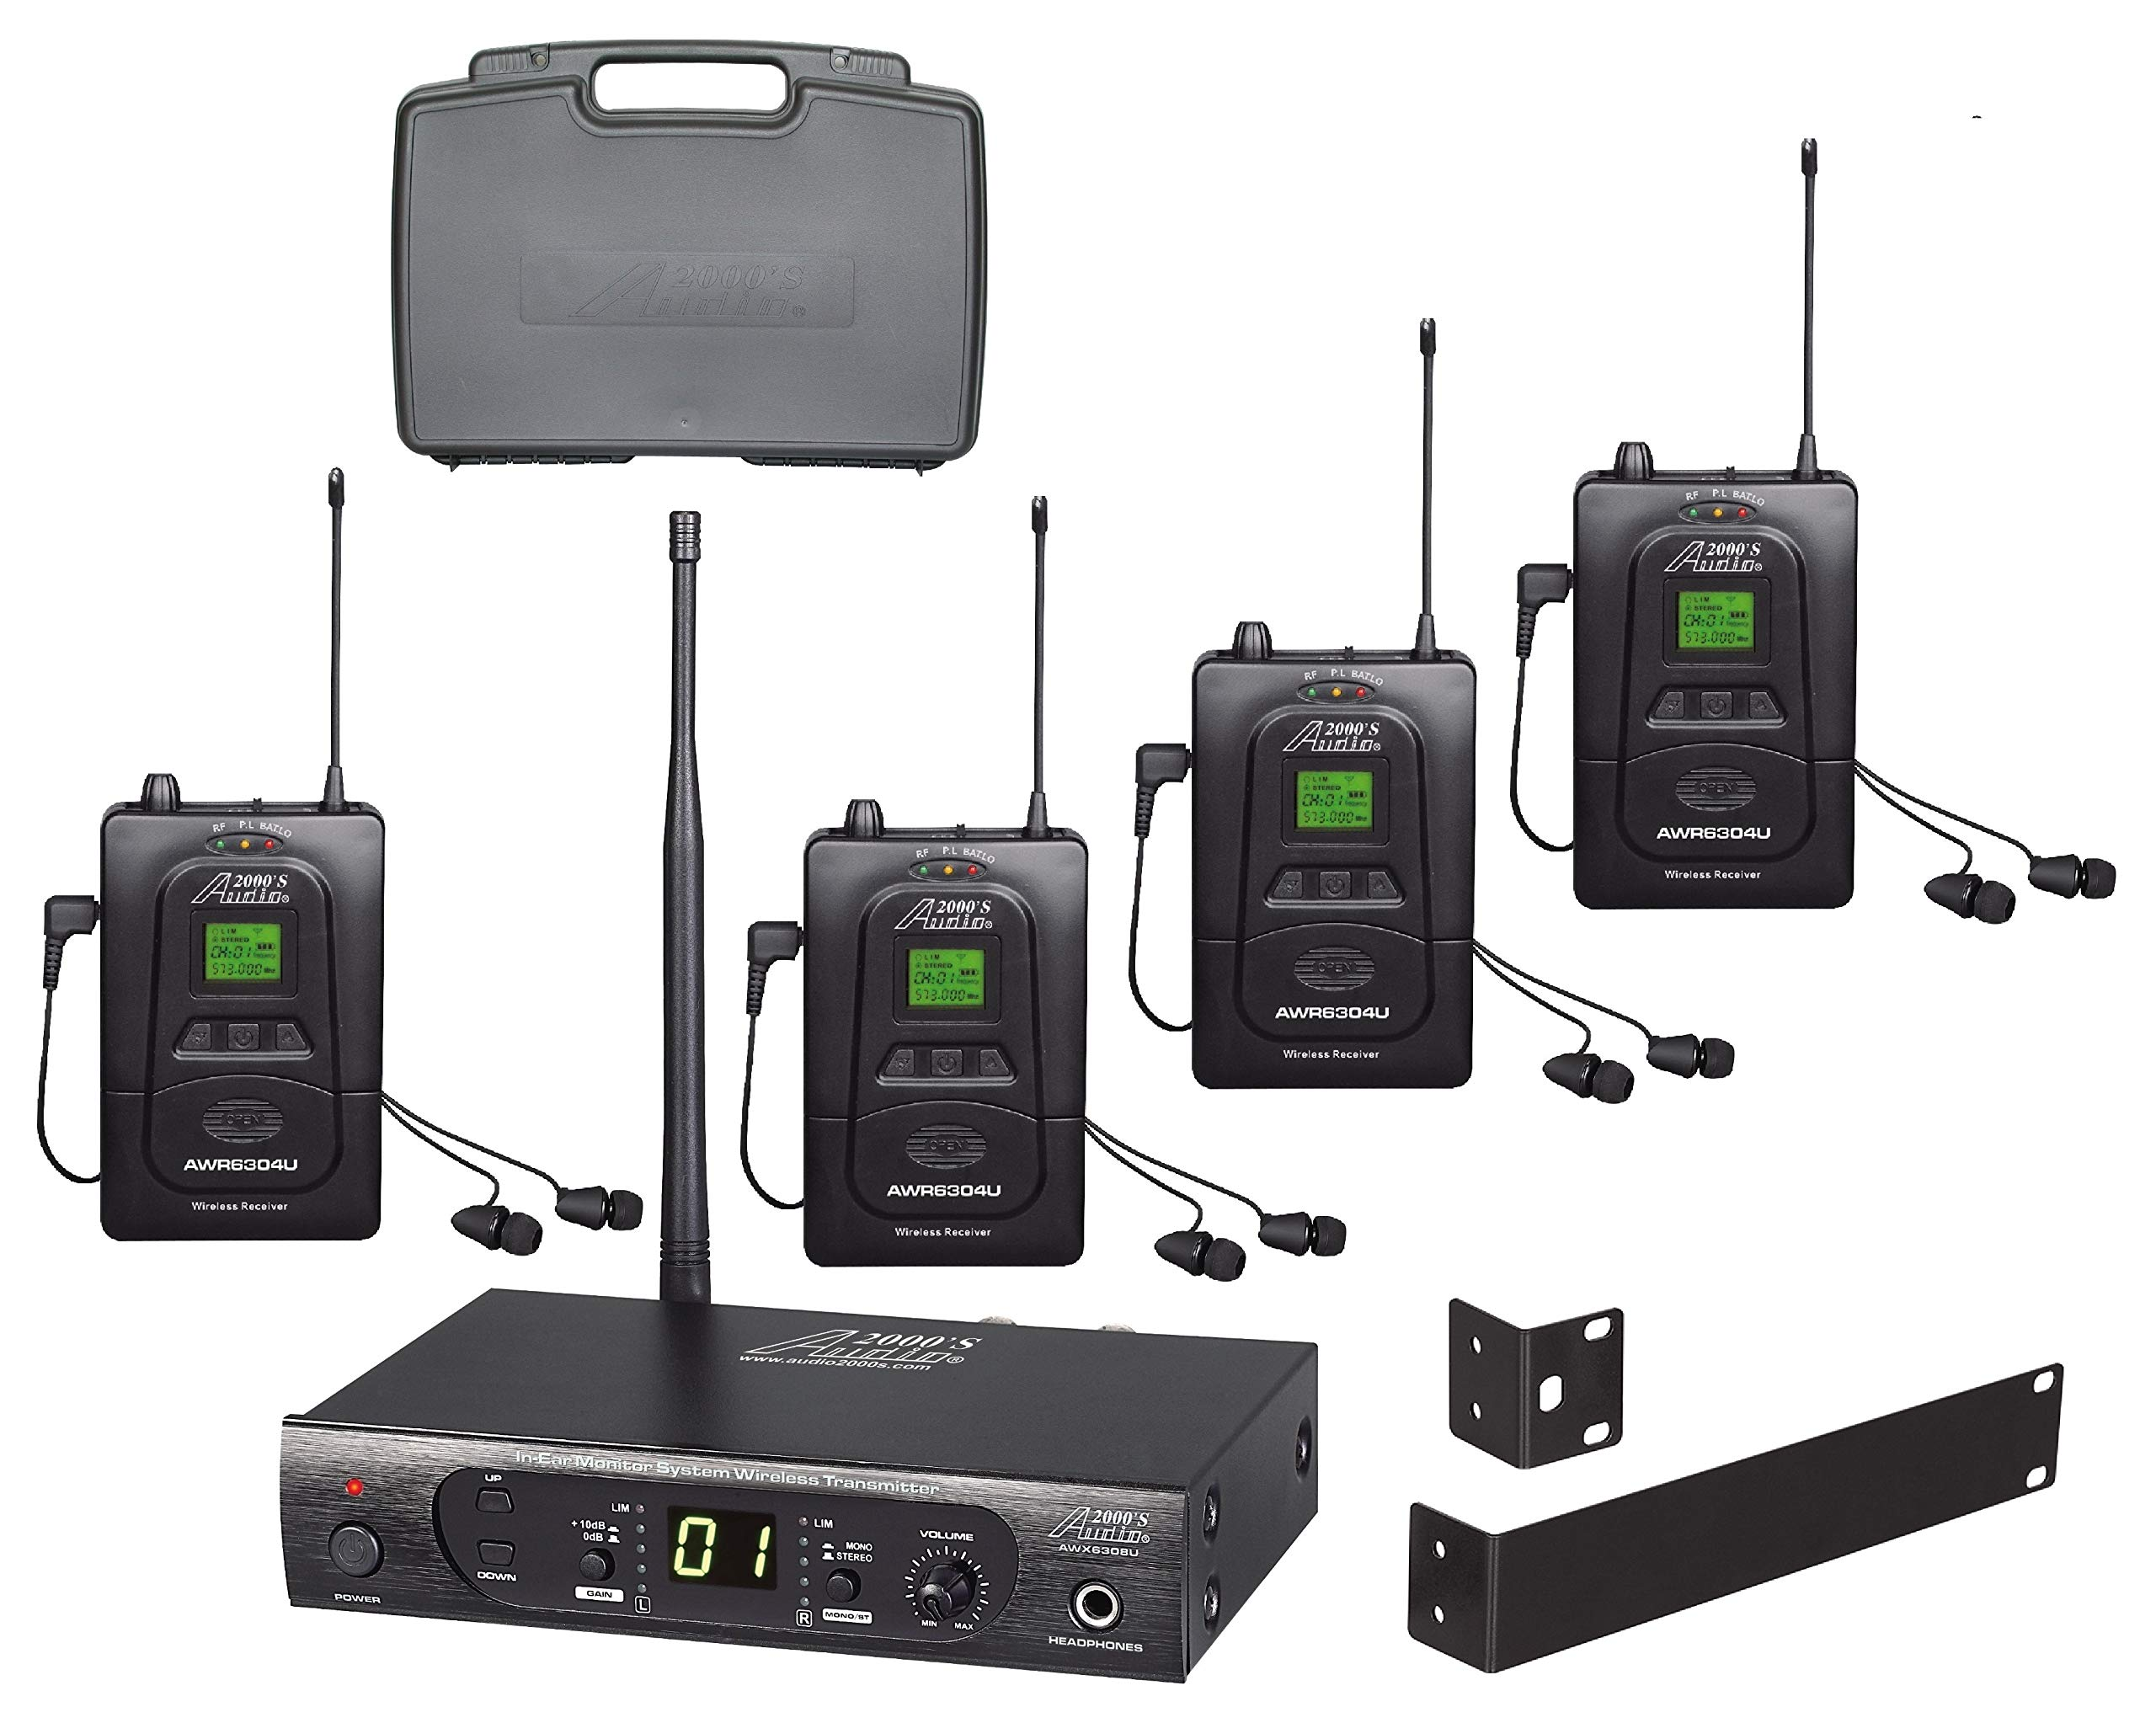 Audio2000'S AWM630AU UHF 100 Selectable Frequency Wireless In-Ear Monitor System with Four Wireless Receivers and a PVC Carrying Case by Audio 2000S